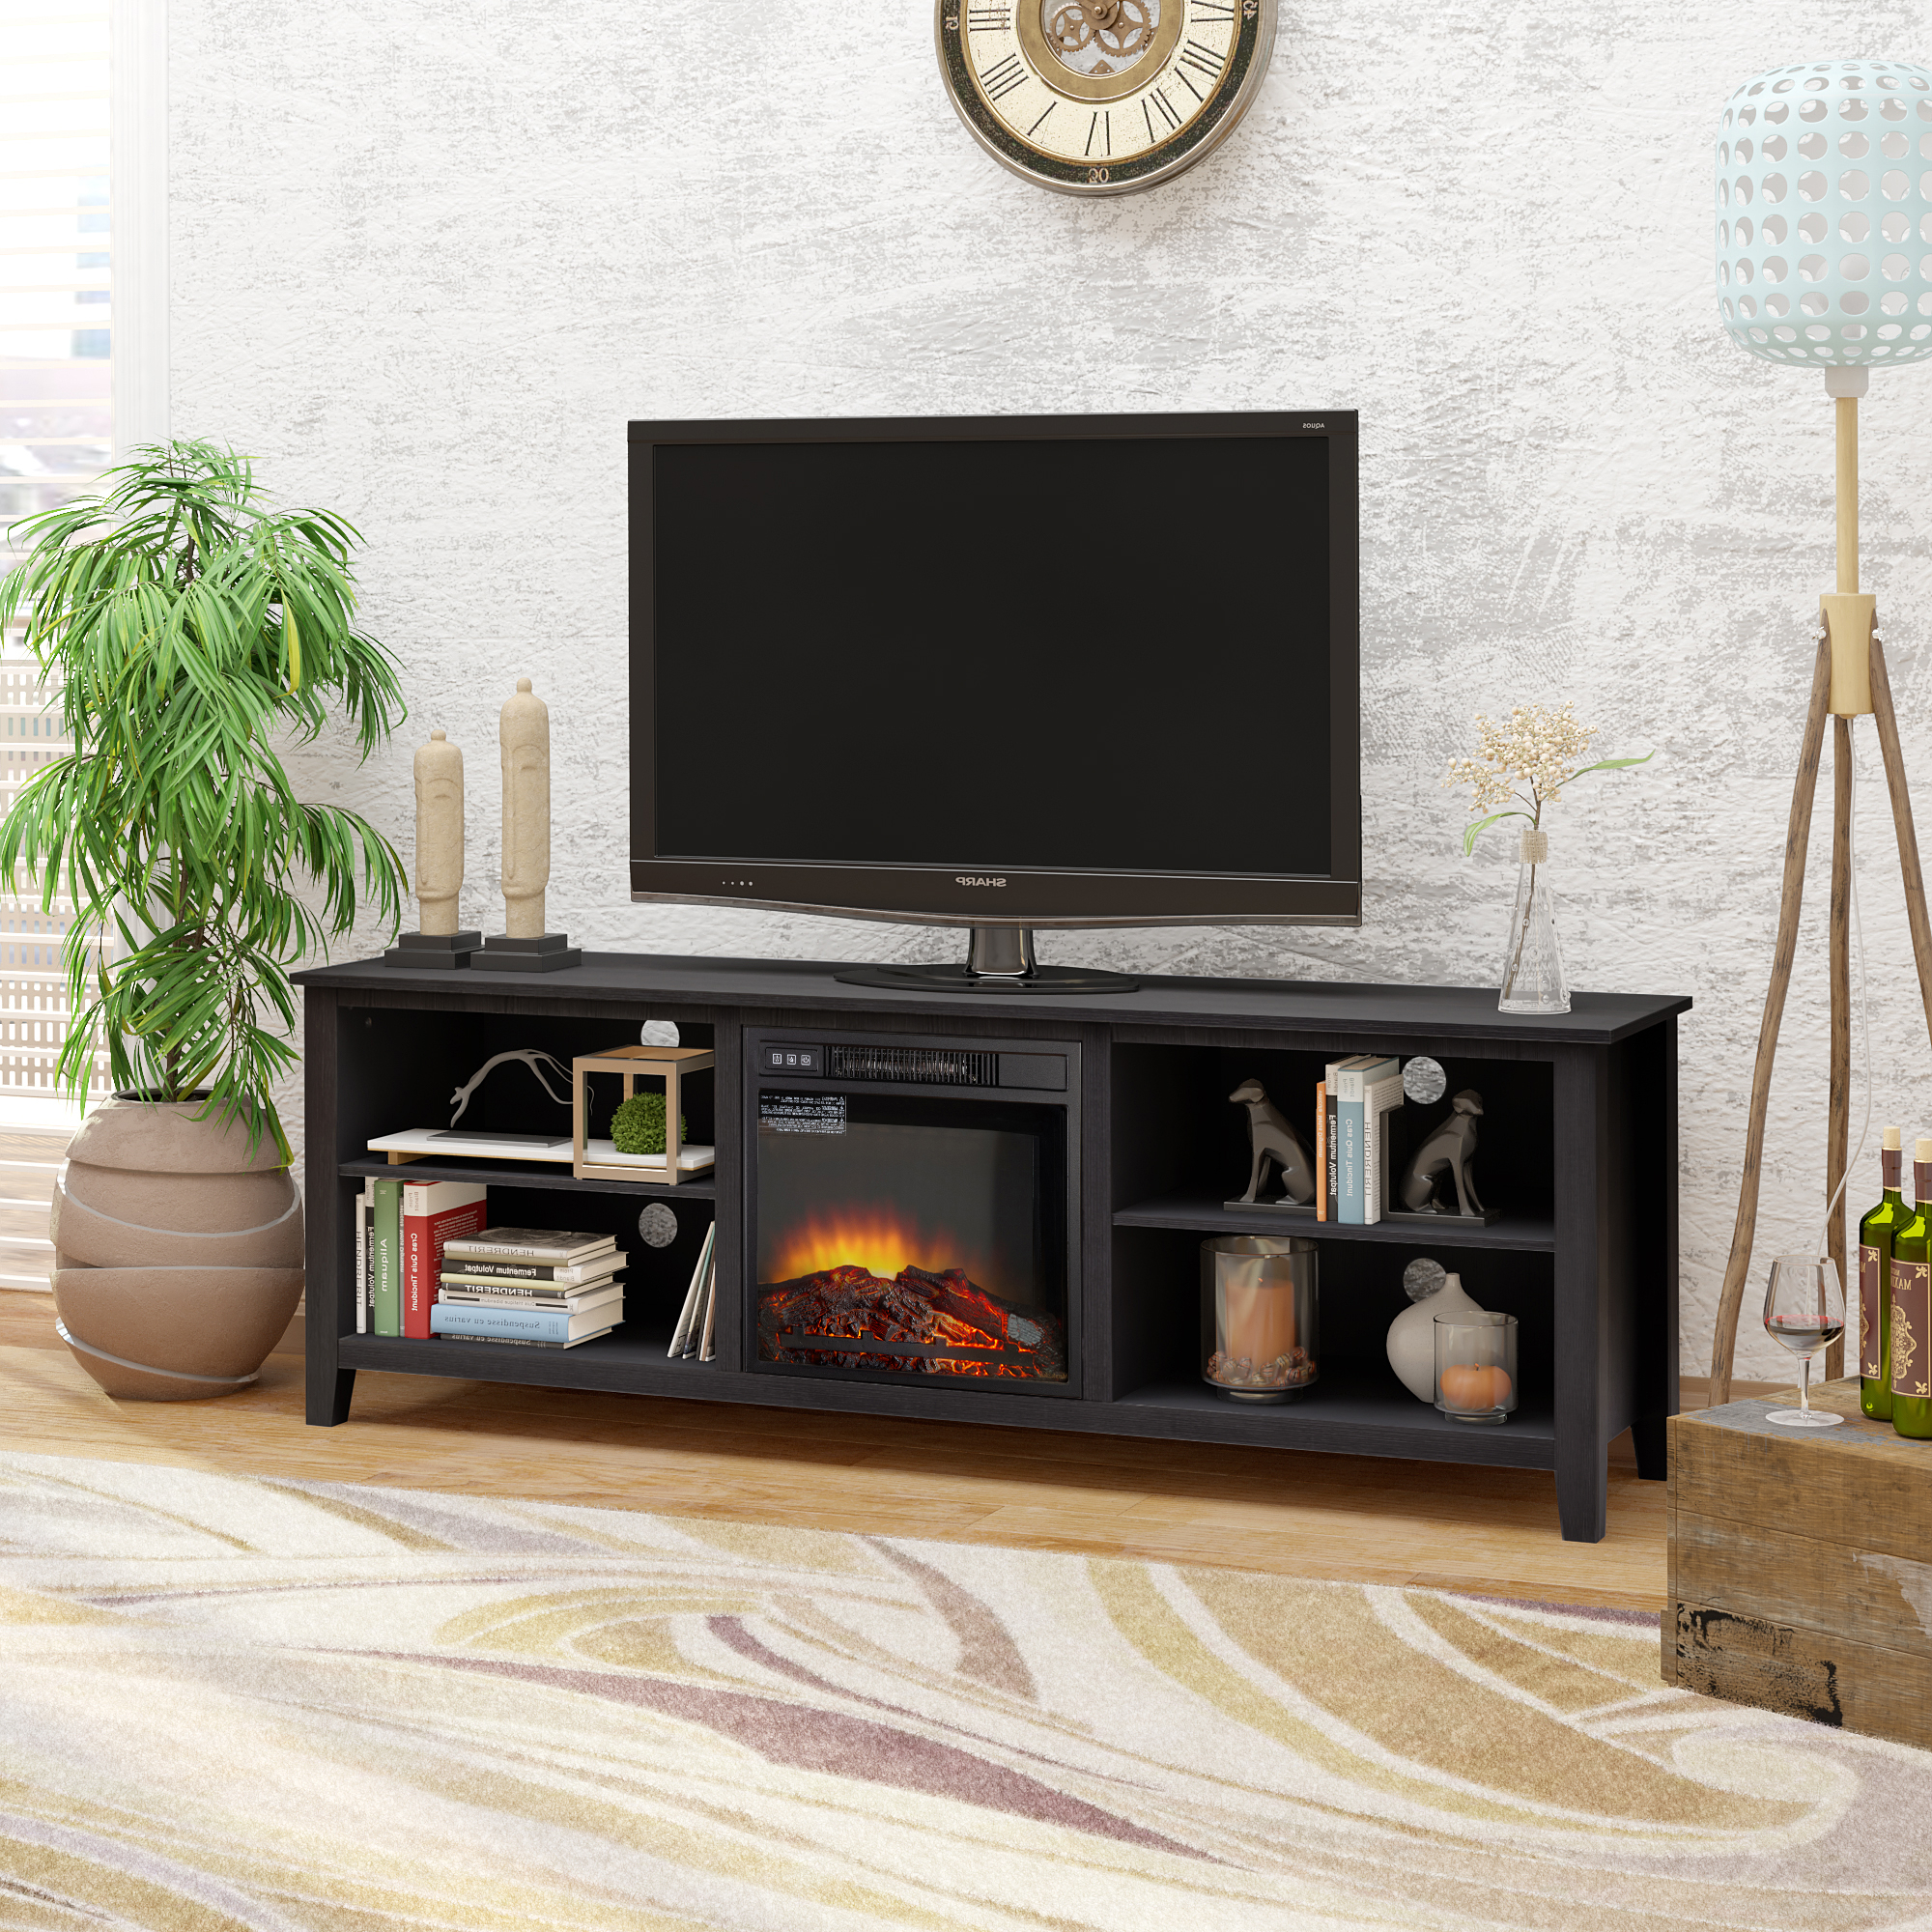 """Mainor Tv Stands For Tvs Up To 70"""" With Regard To Most Popular 70"""" Tv Stand Fireplace Media Console For Tvs Up To  (View 1 of 25)"""